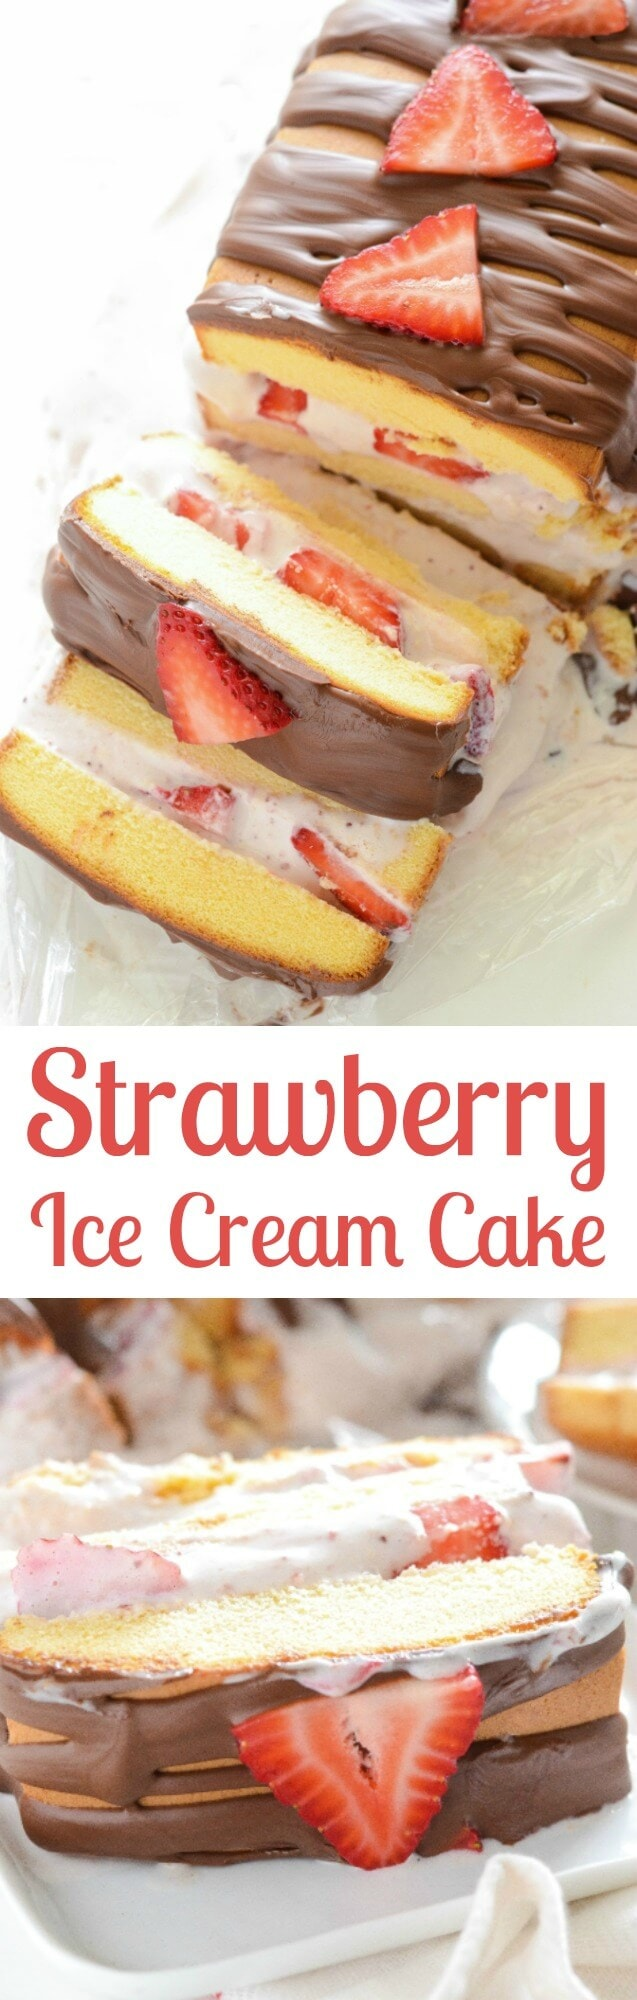 Pound Cake With Strawberries And Ice Cream